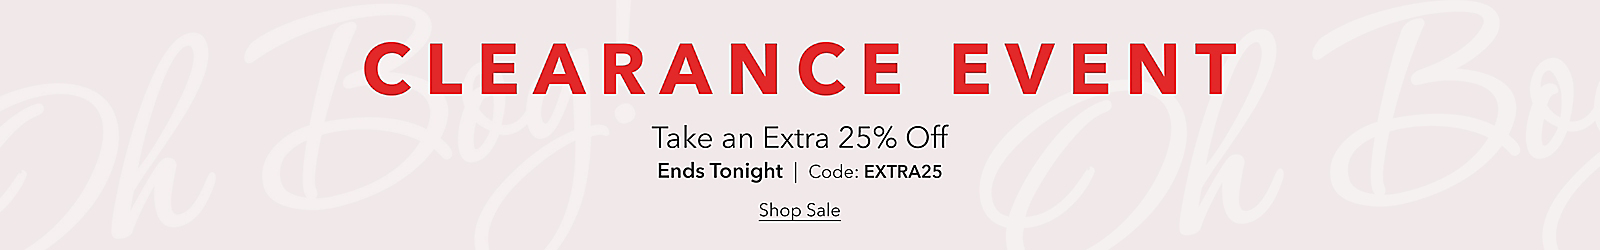 Take an Extra 25% Off Clearance with Code: Extra25